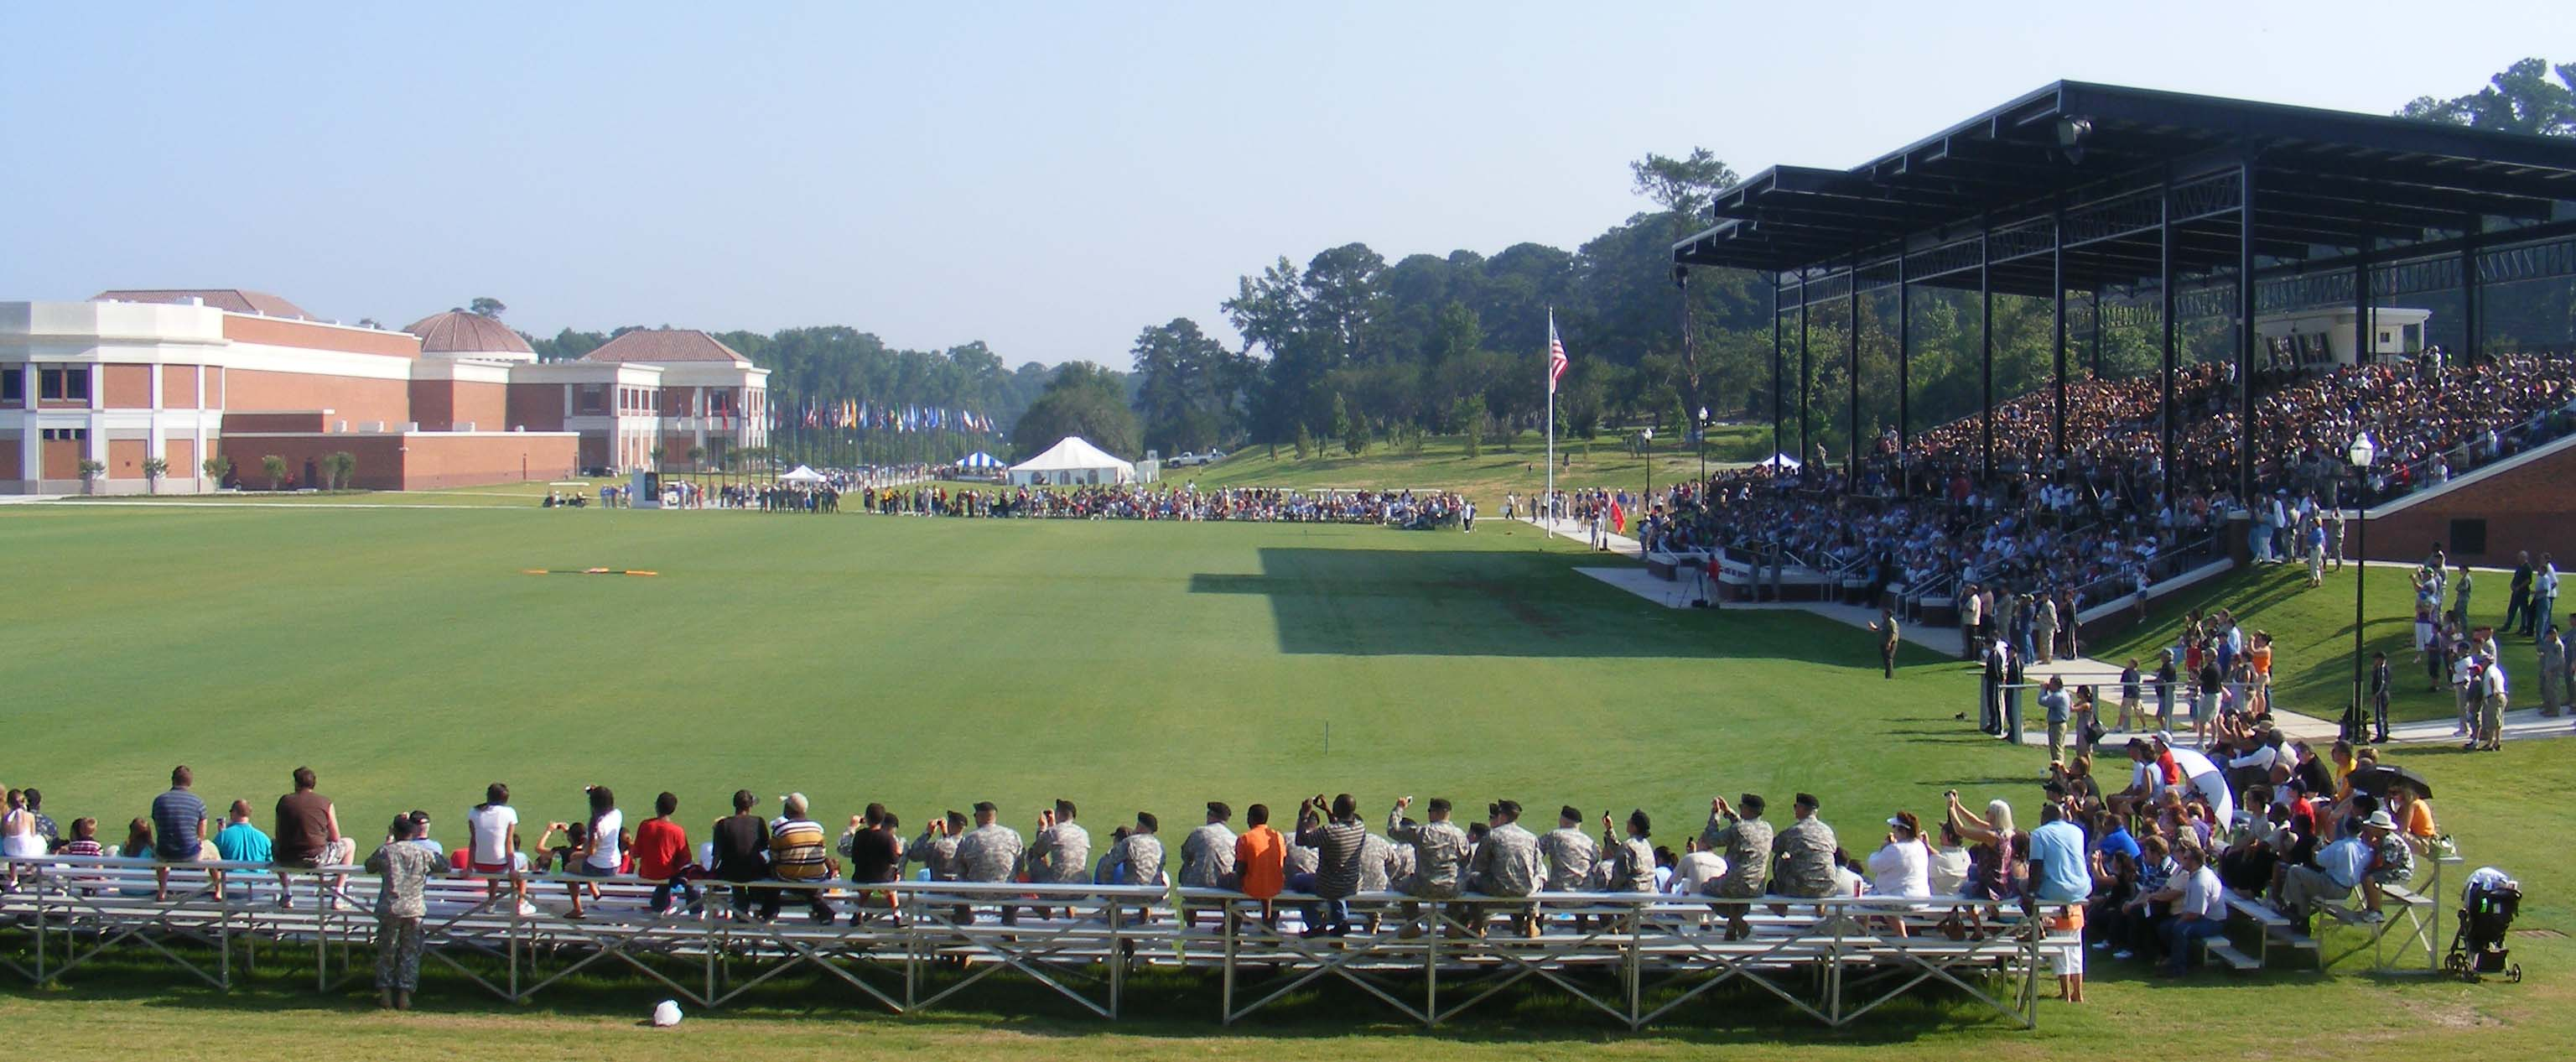 Parade Field, National Infantry Museum, Ft. Benning (The Parade Field is actually on the Ft. Benning Reservation, but the Museum building is in Columbus.)